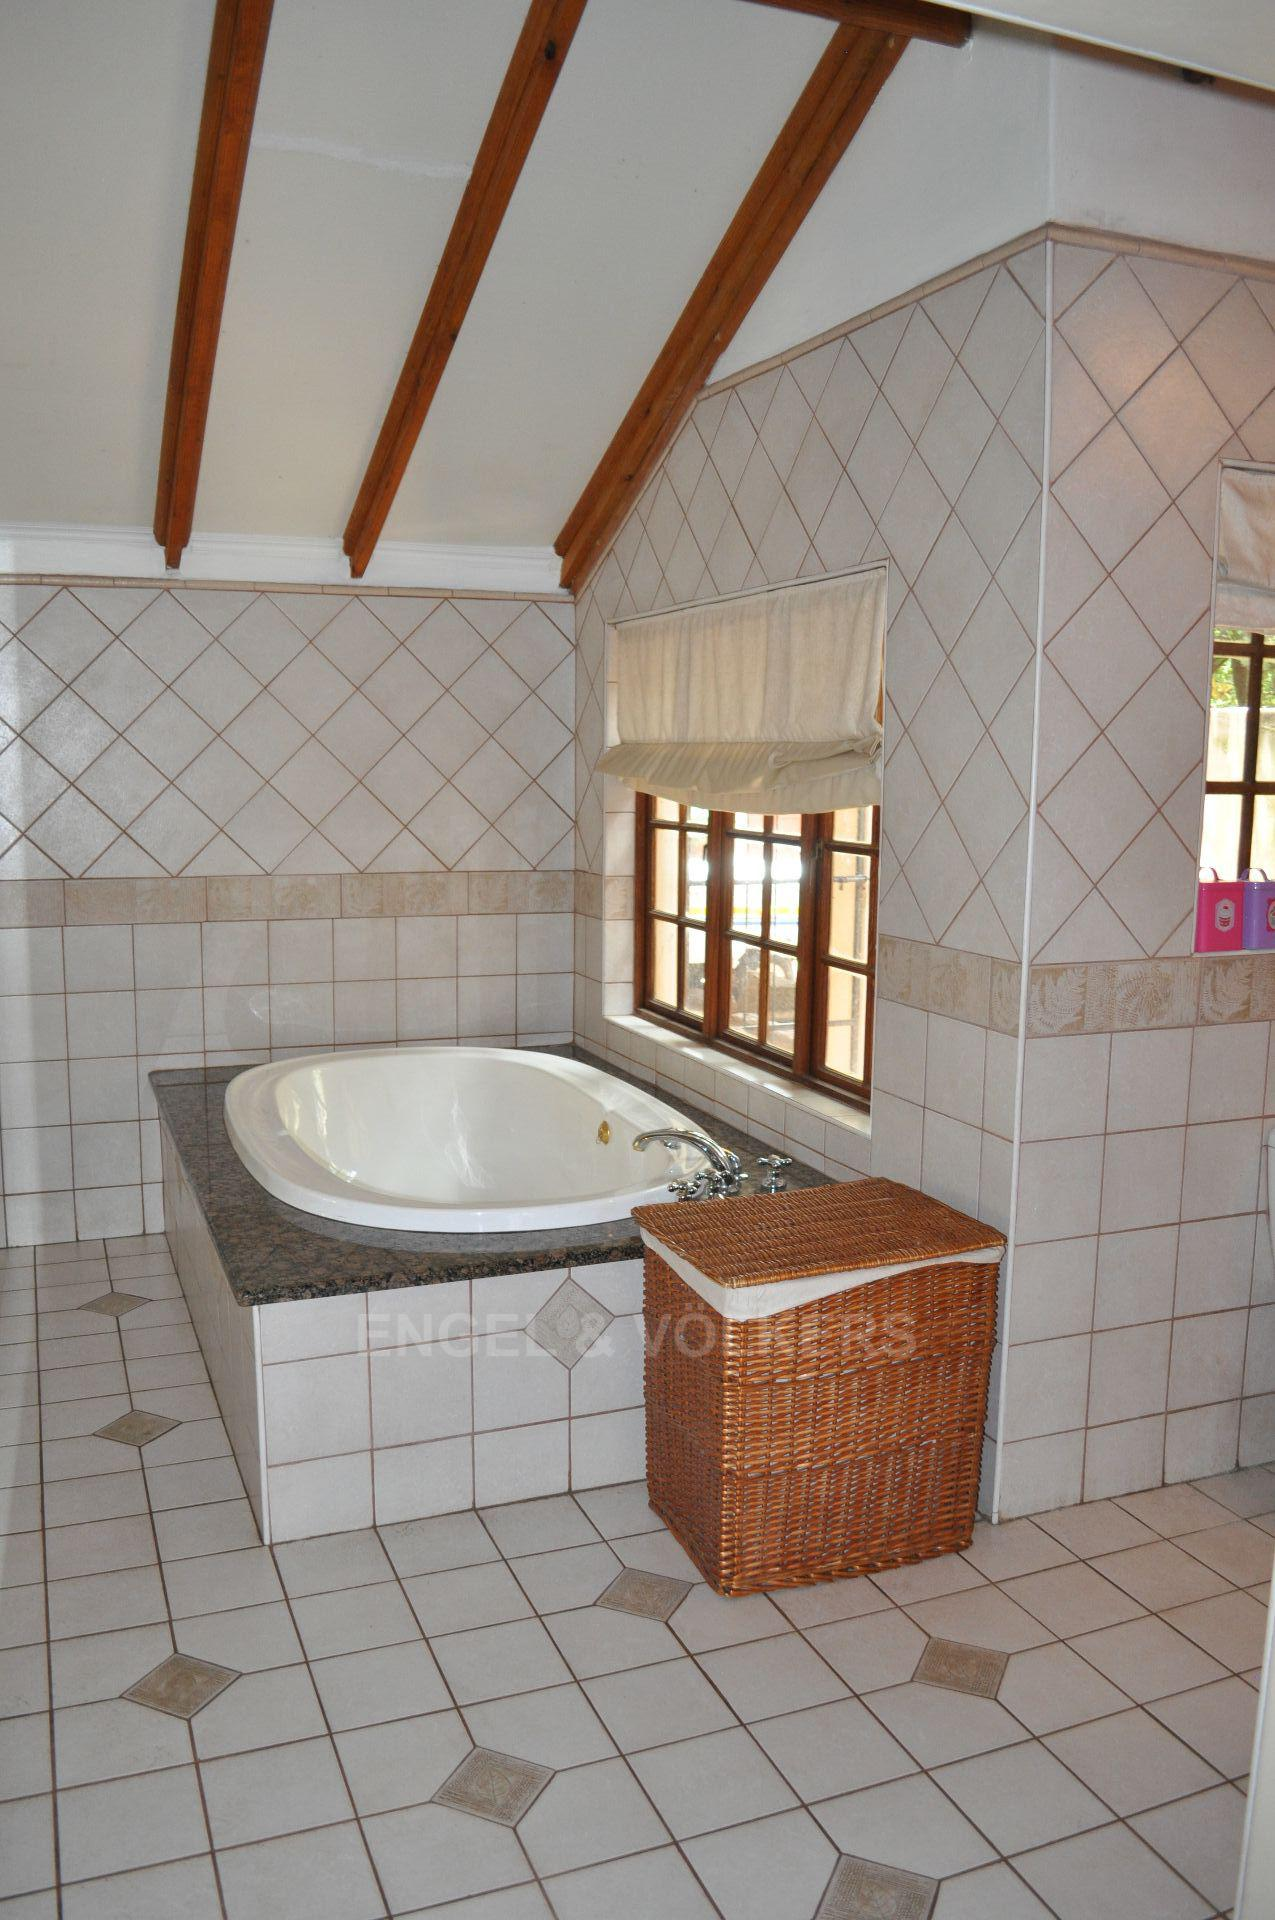 Doringkloof property for sale. Ref No: 13579964. Picture no 18